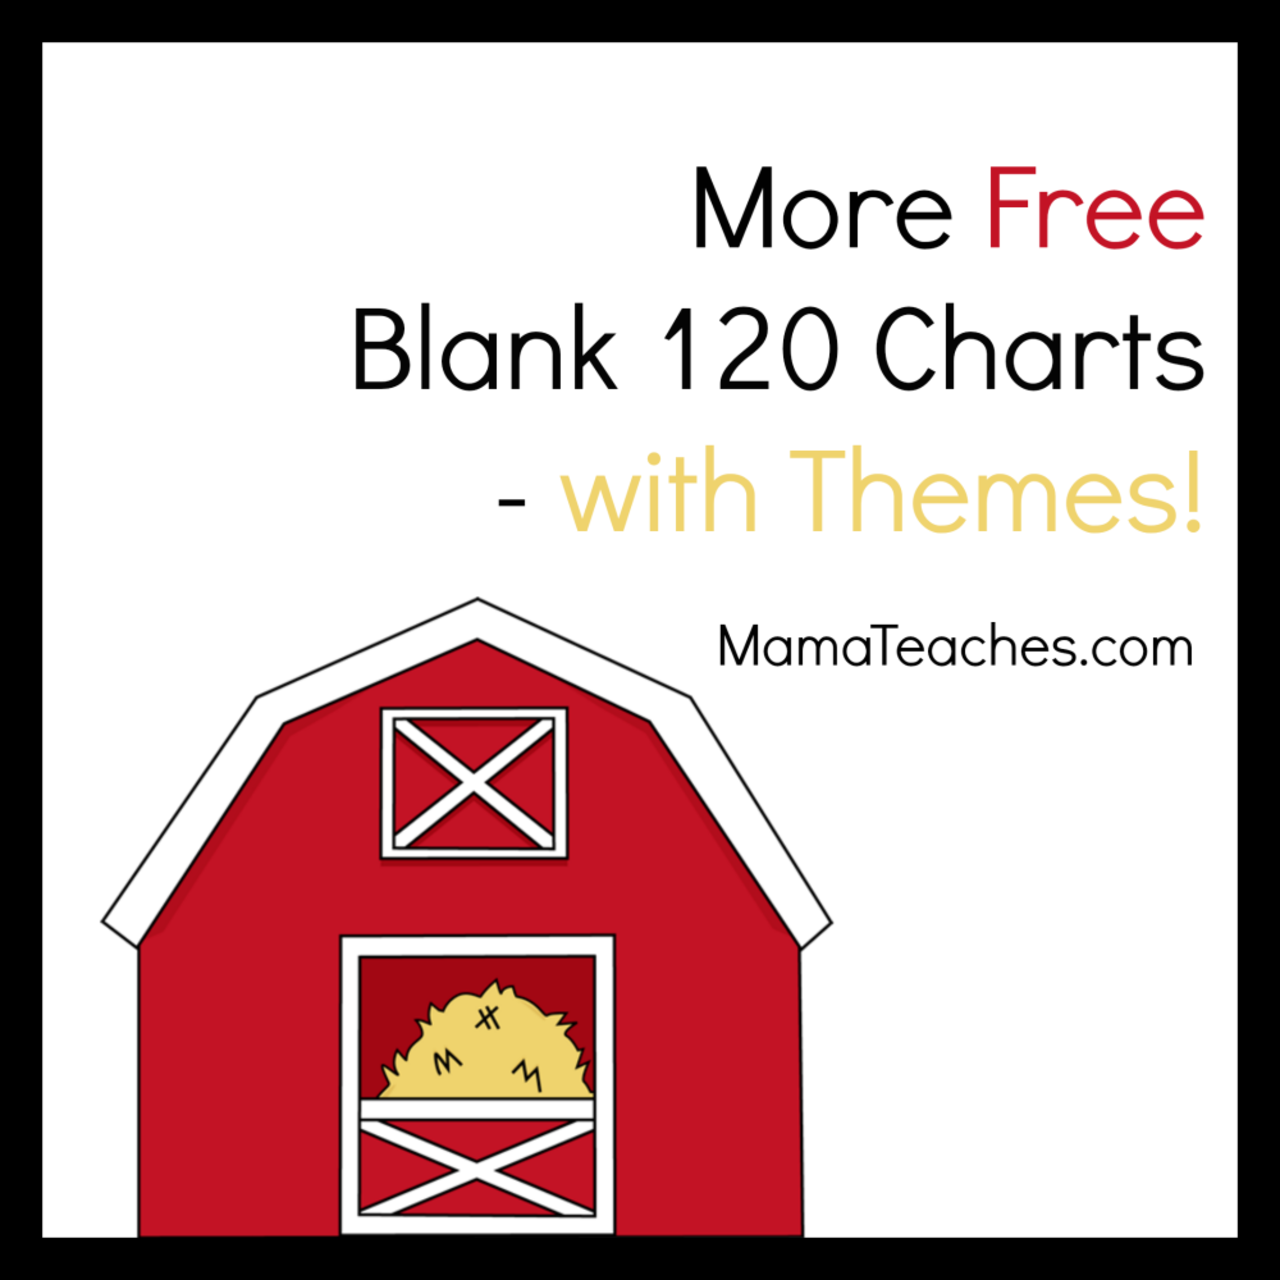 More Free Blank 120 Chart Templates With Themes